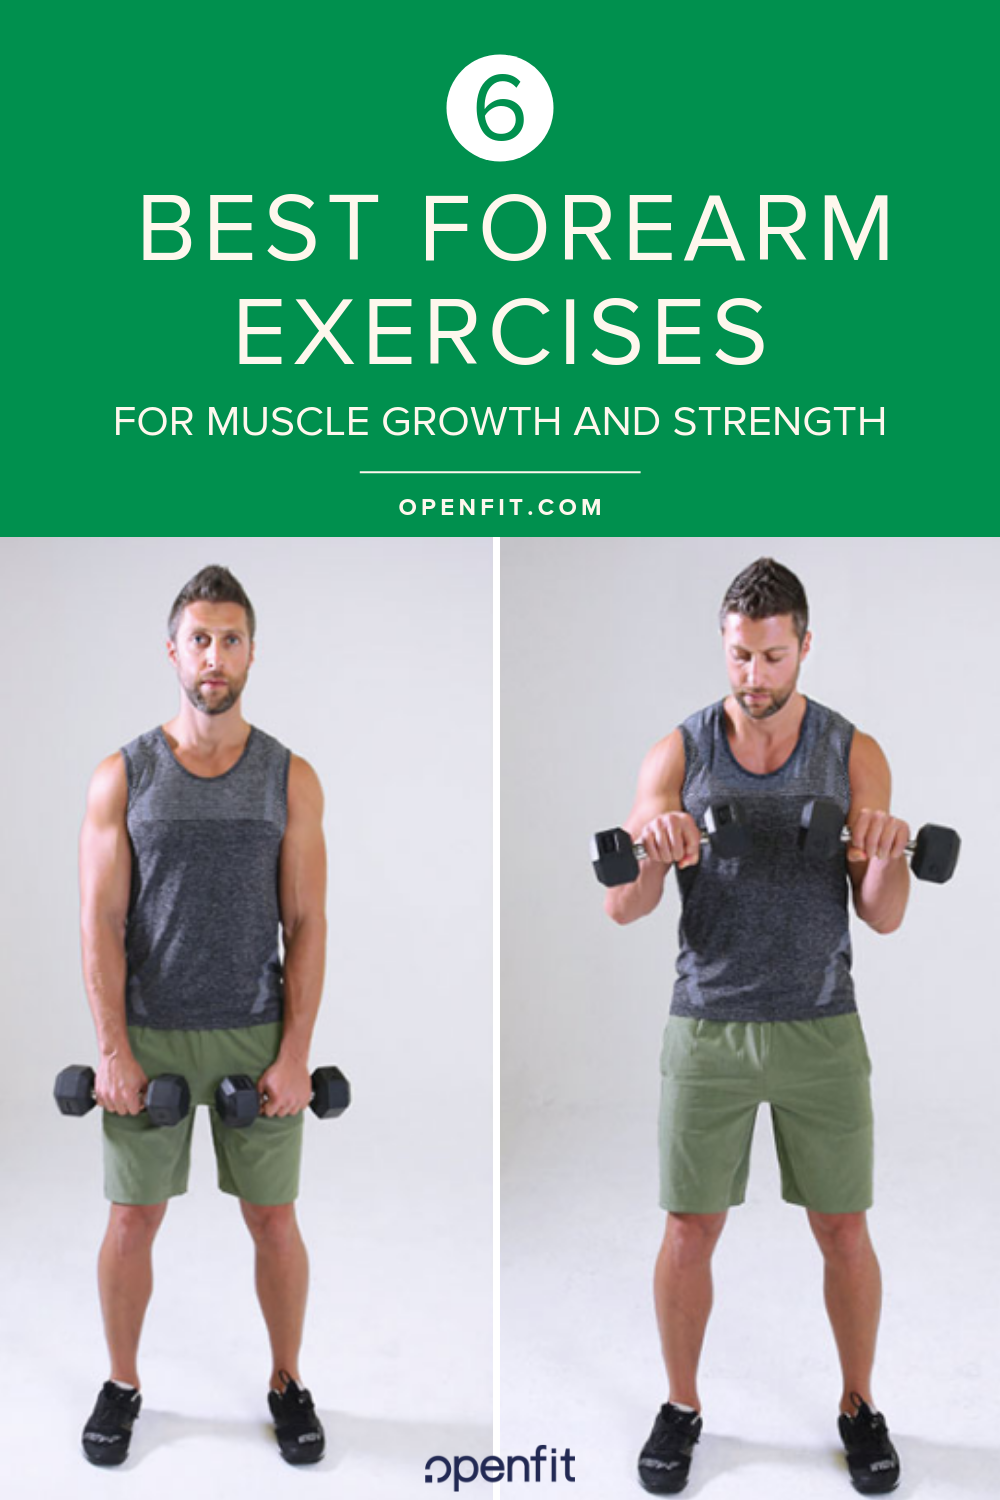 6 of the Best Forearm Exercises